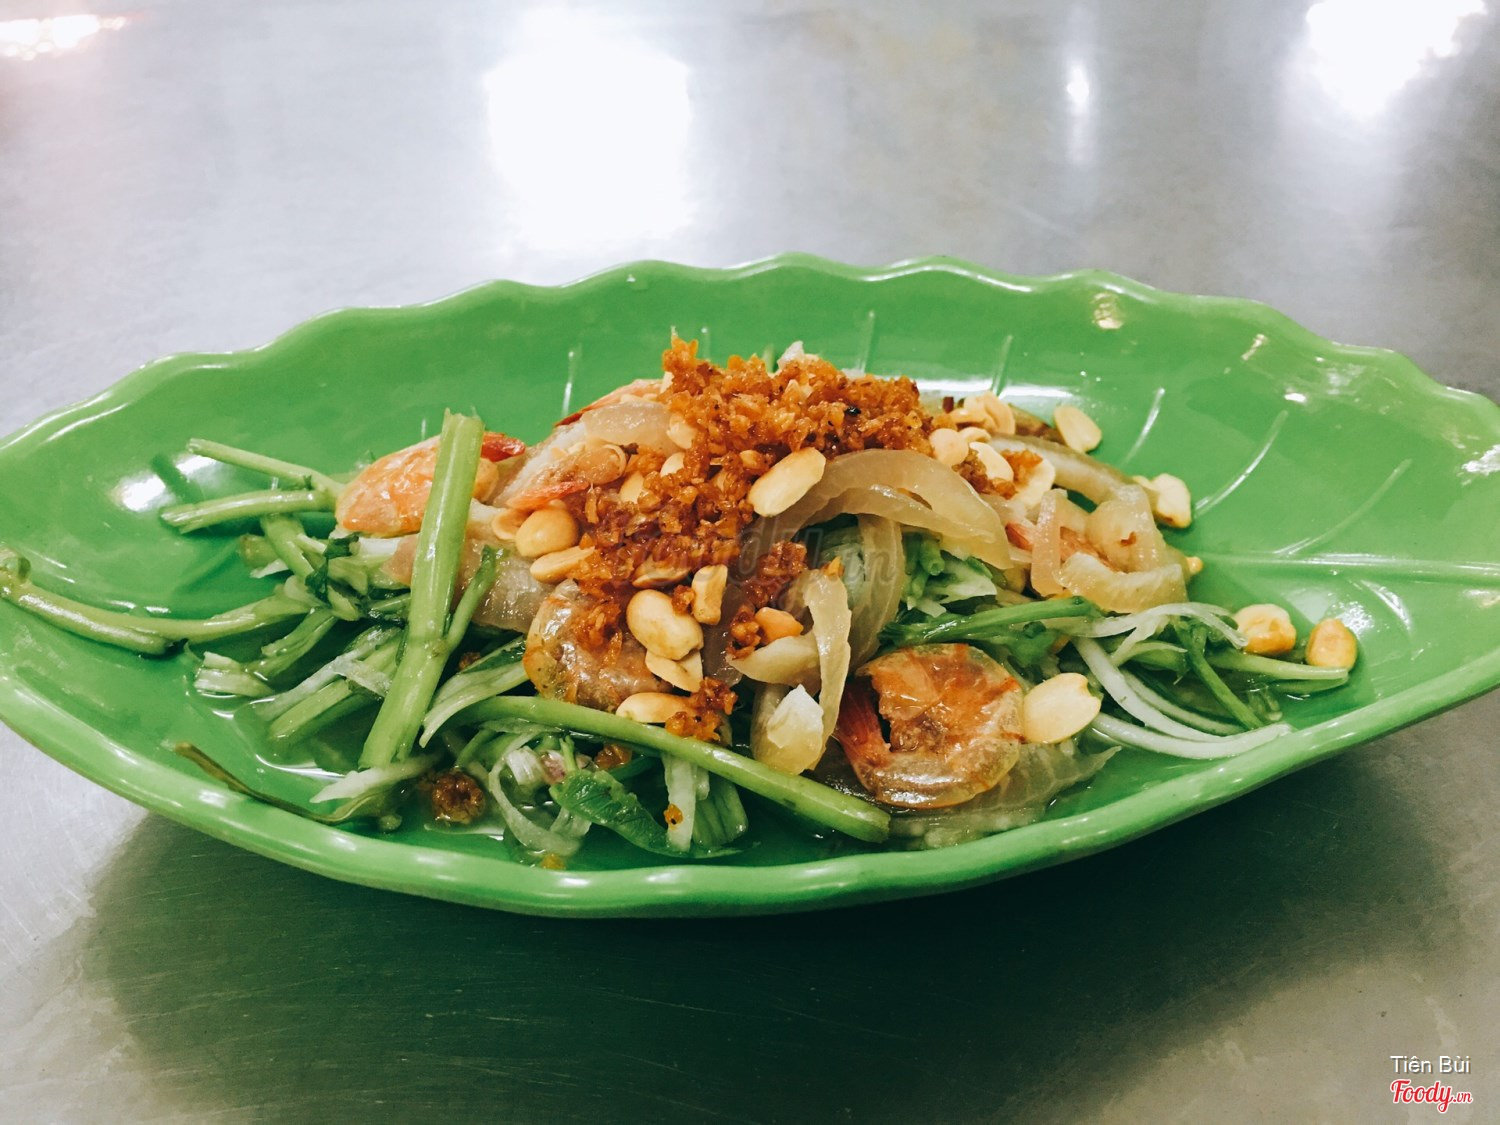 Image result for Gỏi rau muống  foody